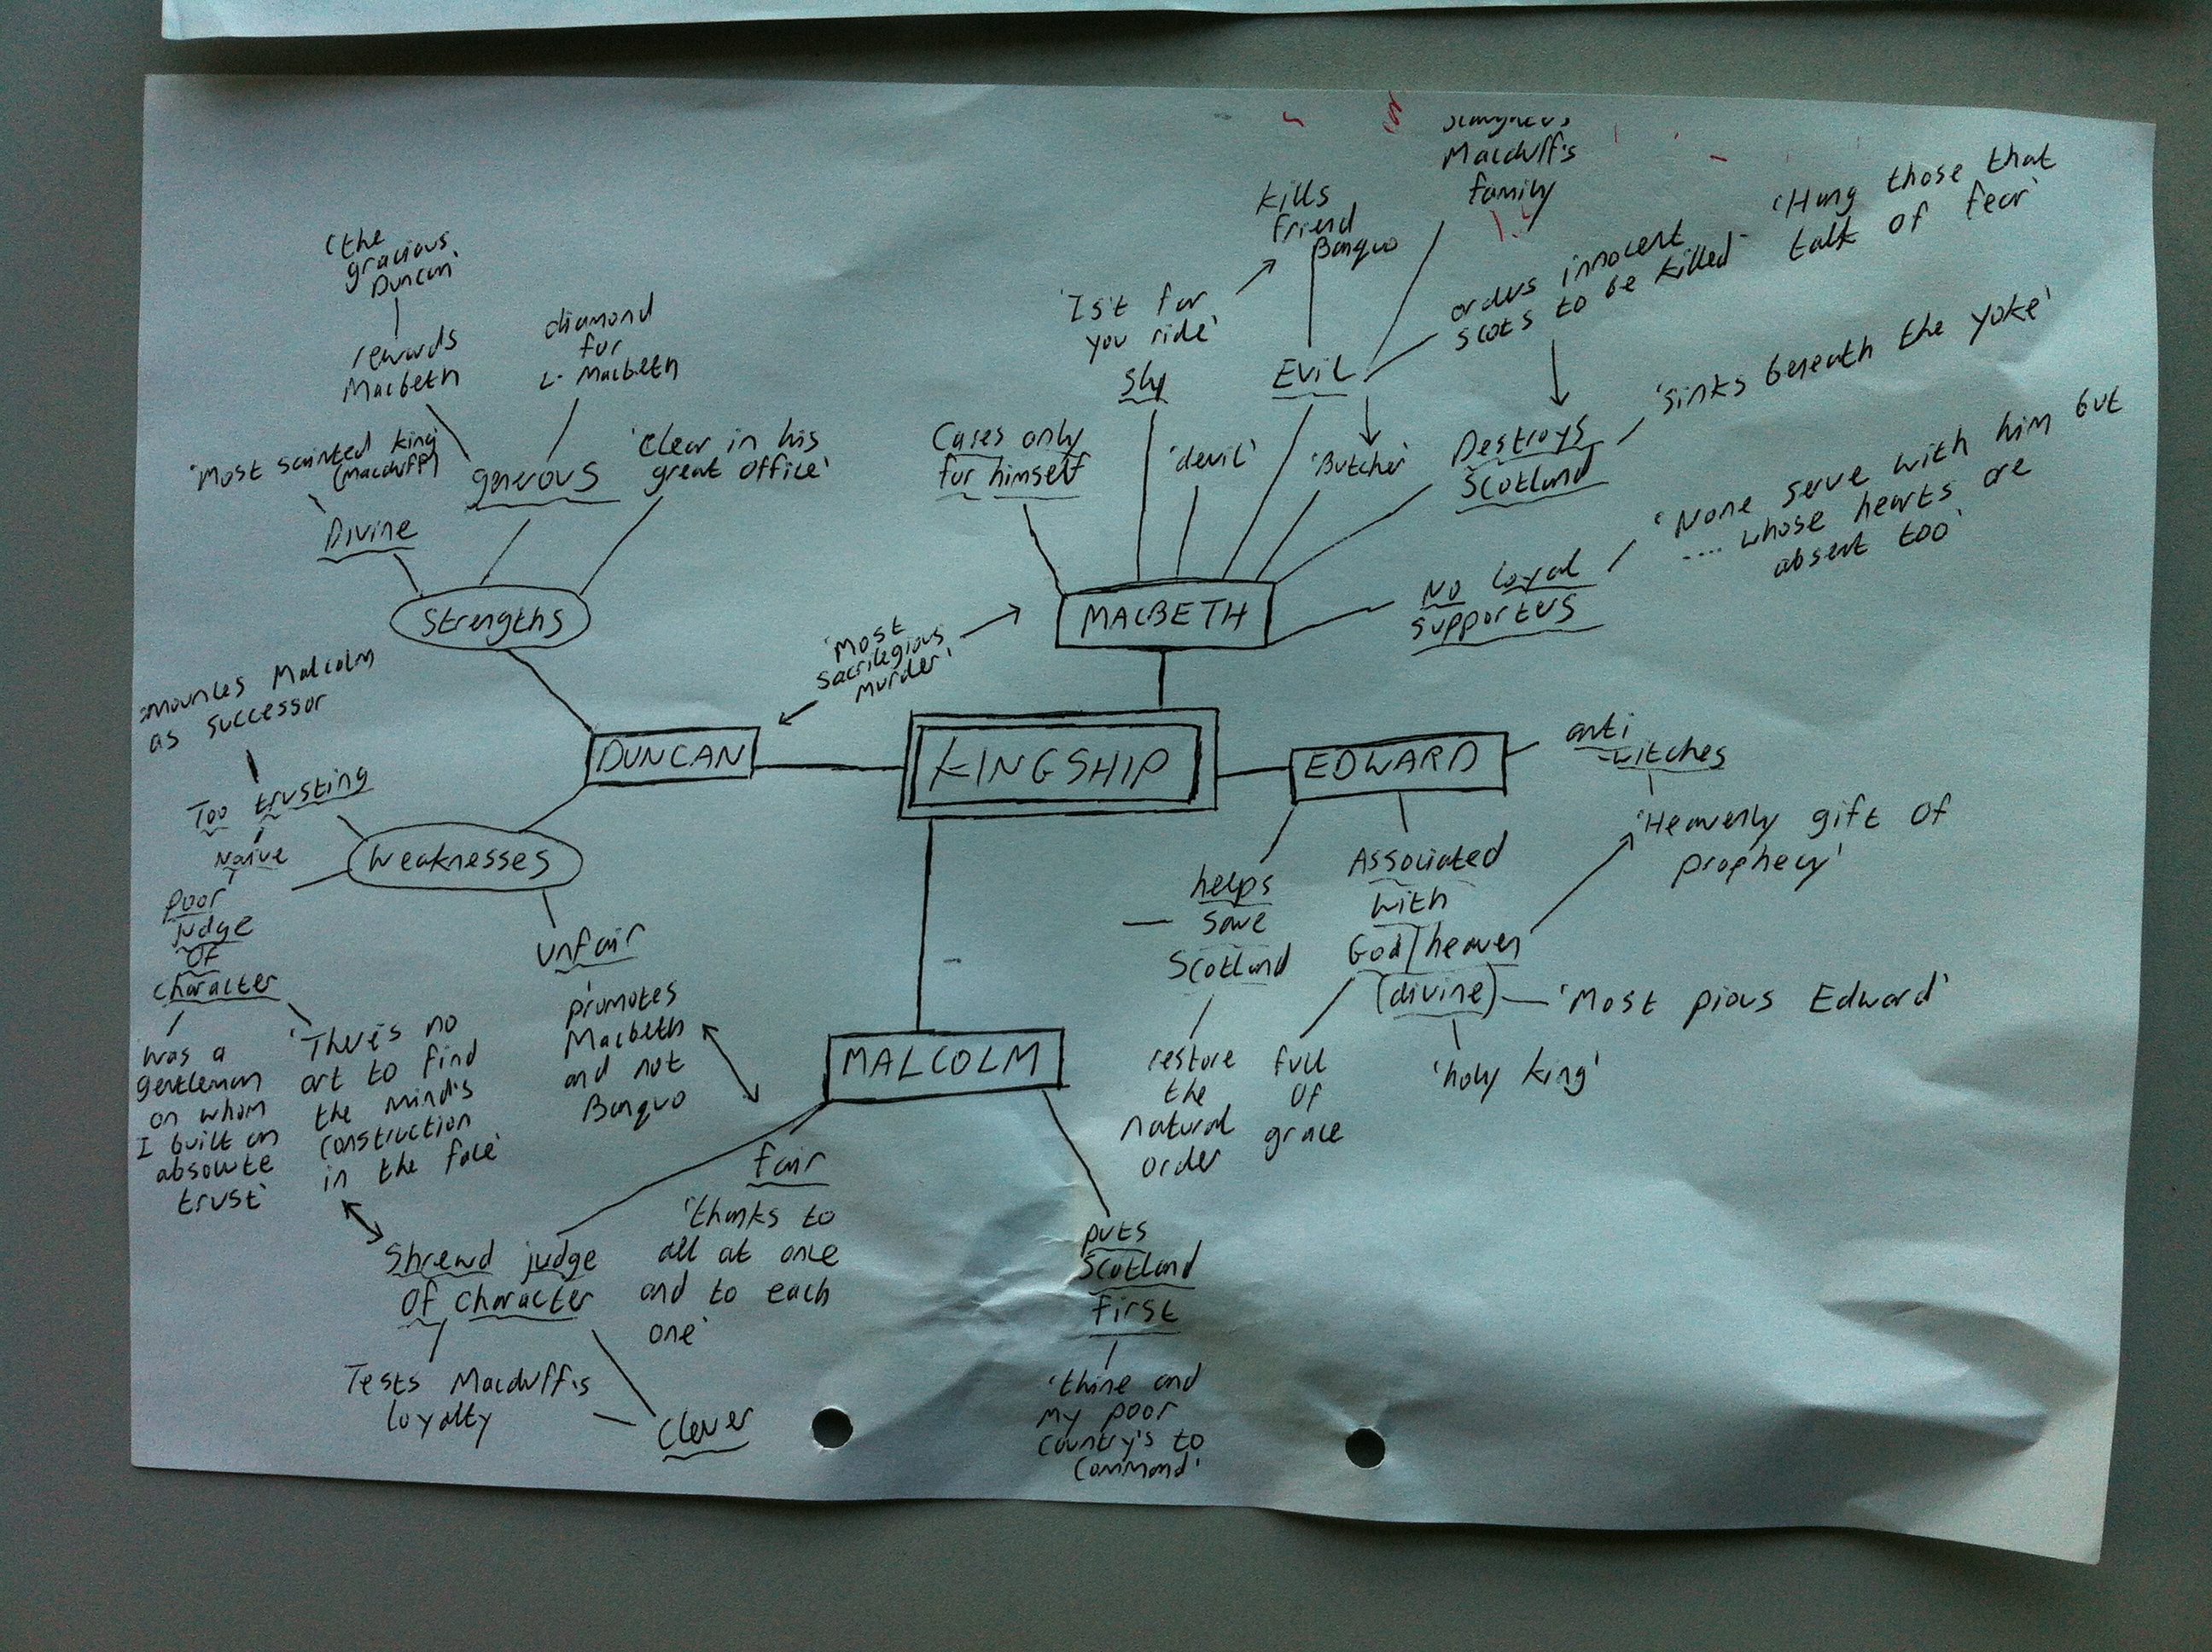 macbeth plans and questions banagher college english blog macbeth kingship plan